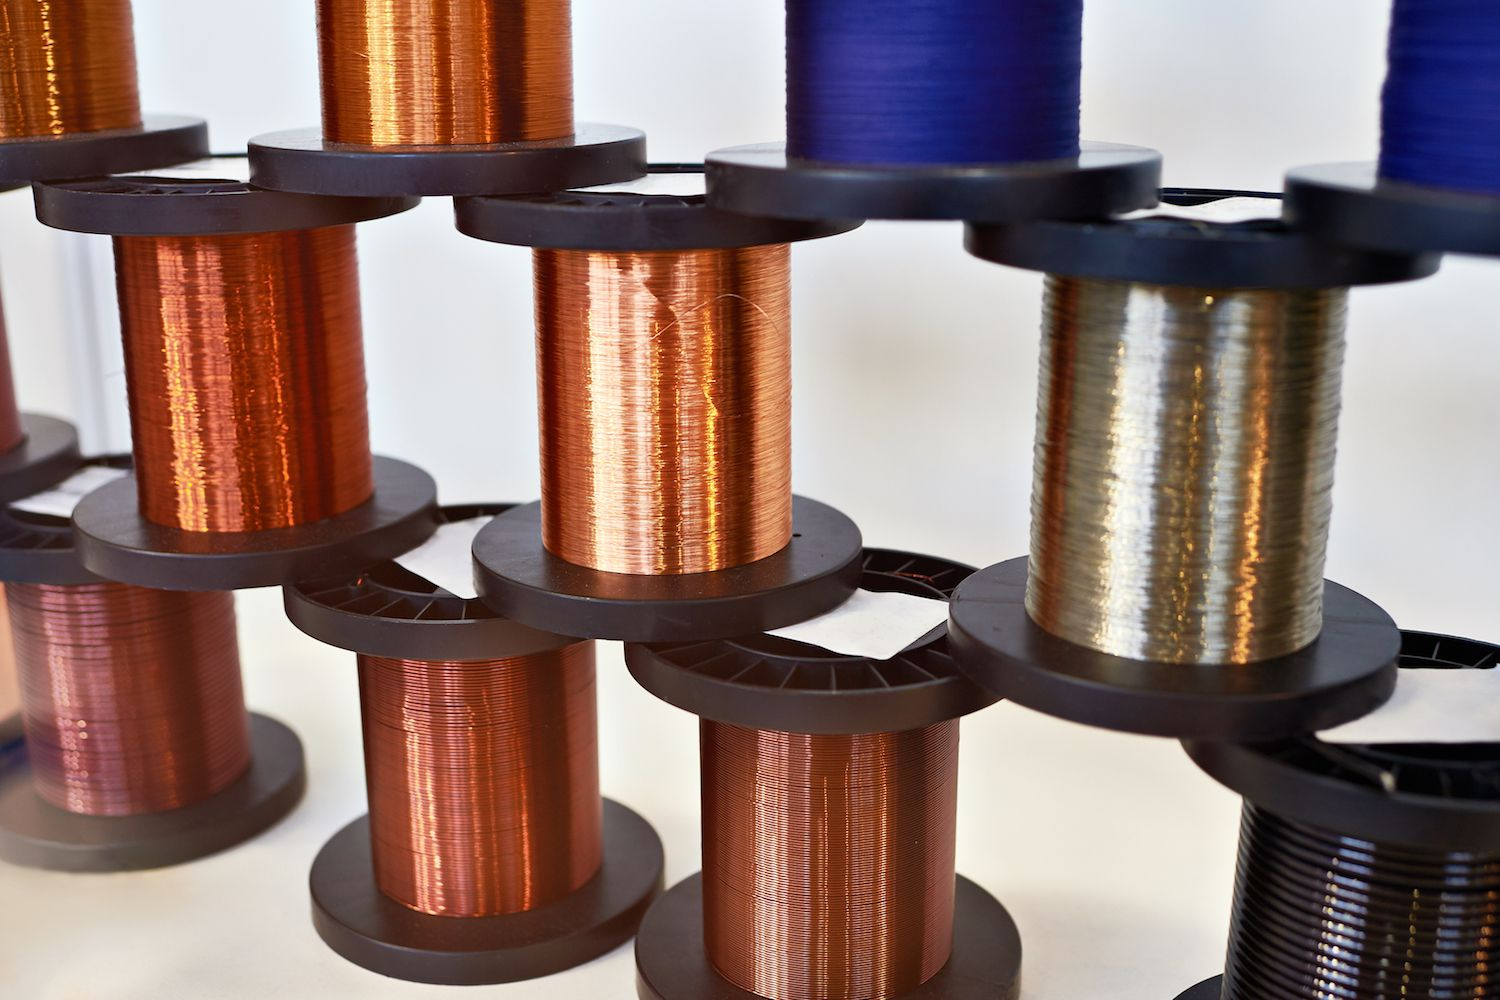 Crypto Custodian Copper Eyes $2.5B Valuation in $500M Funding Round Talks: Report